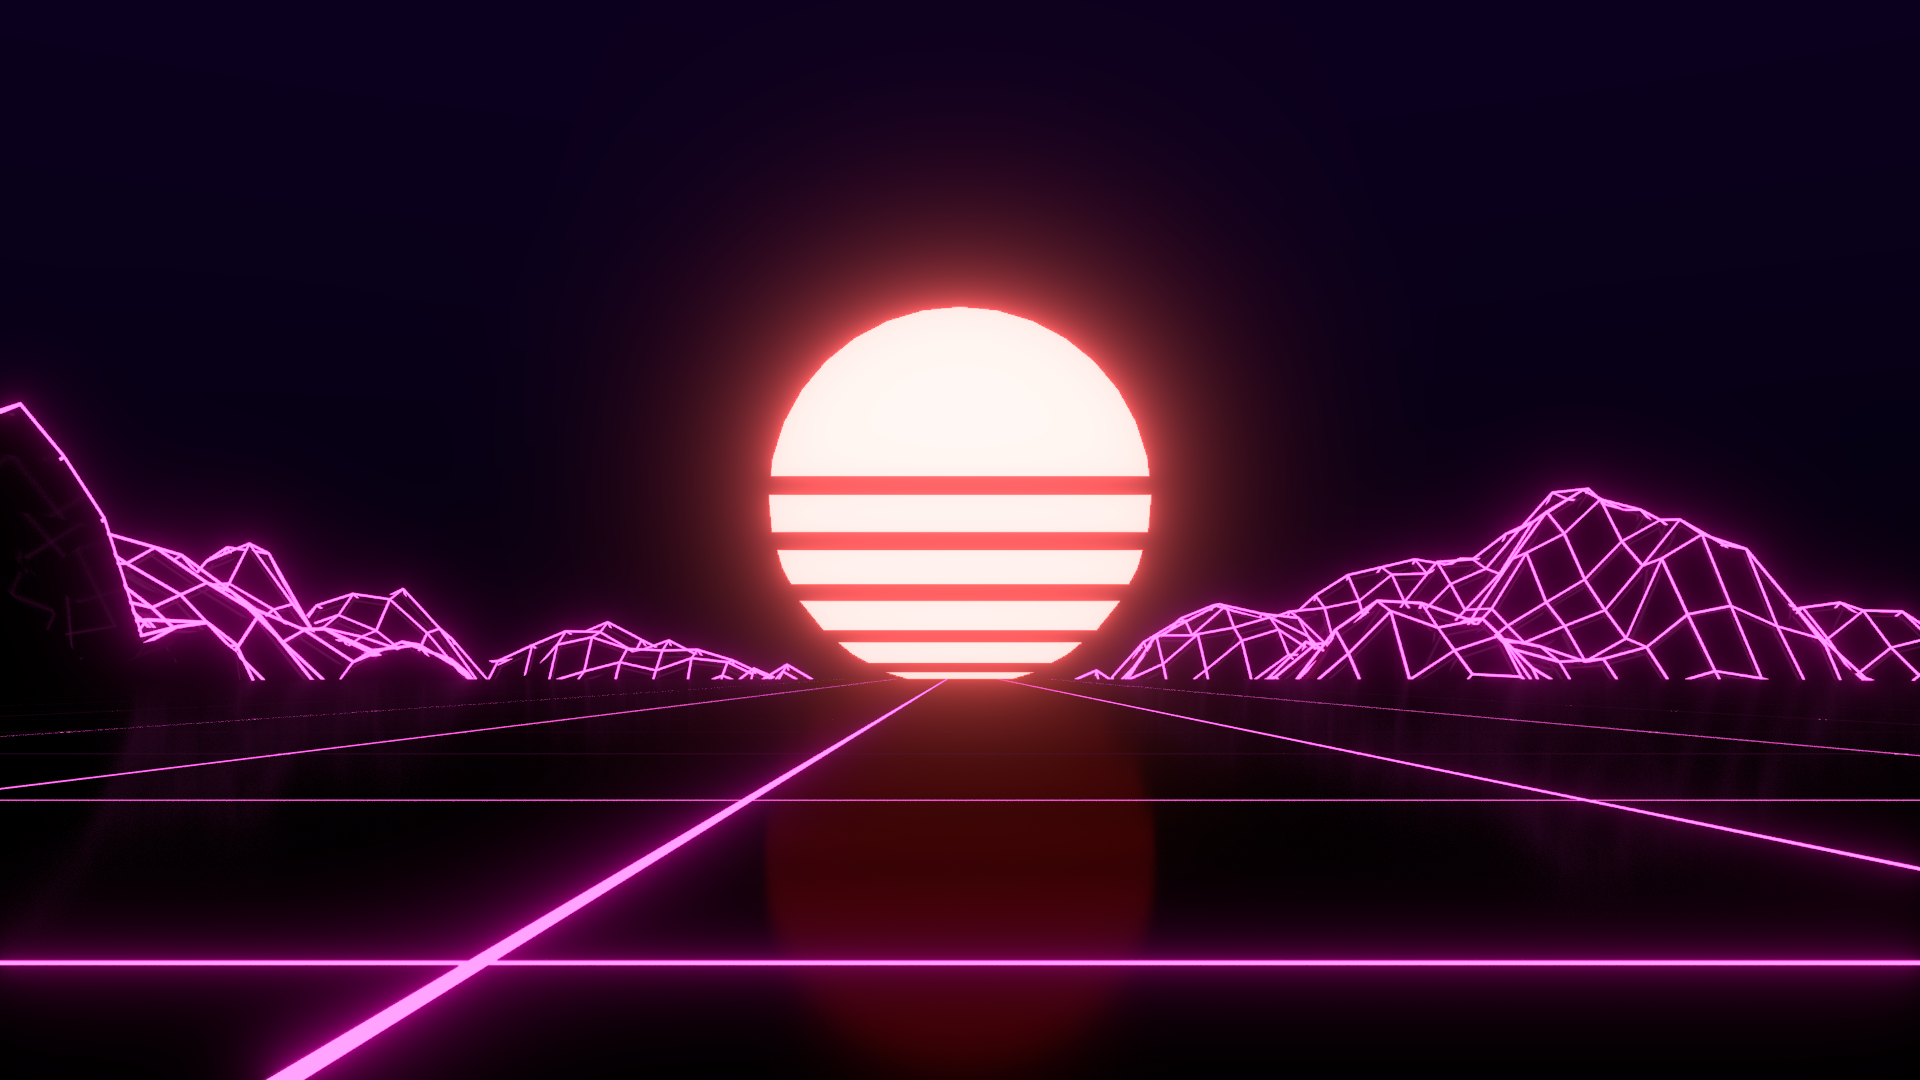 69 695034 retro wave wallpaper hd